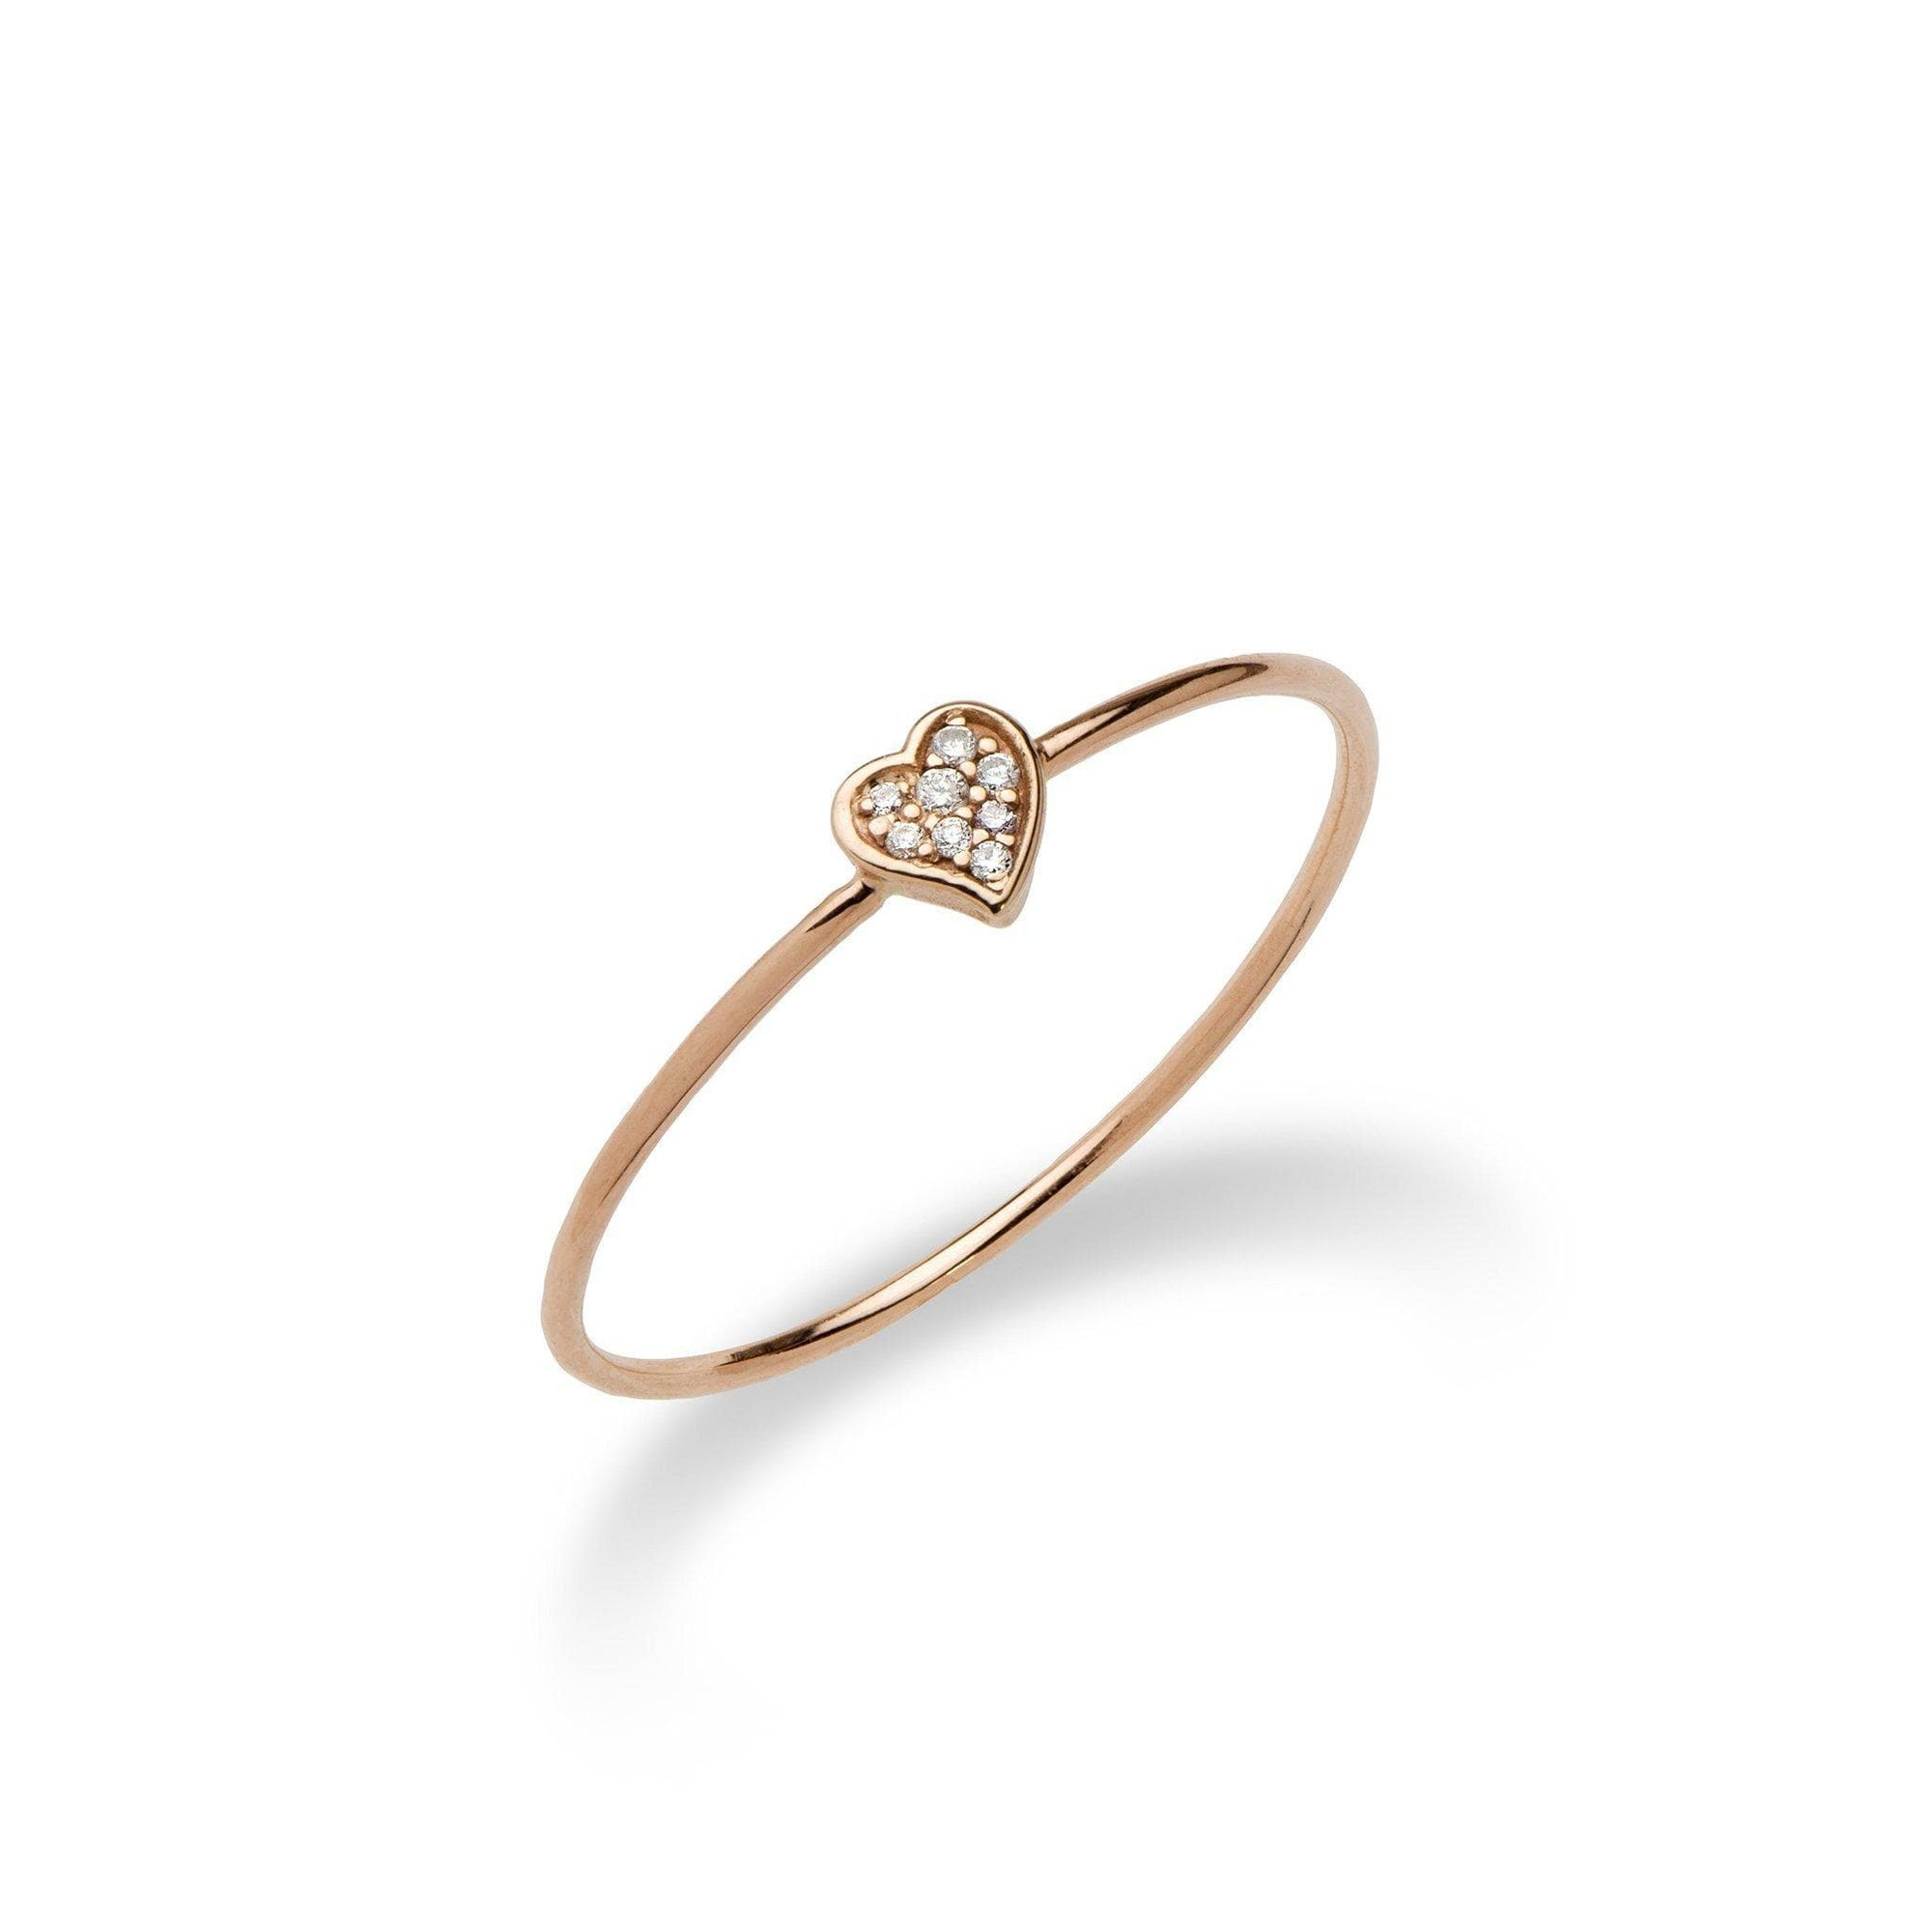 Diamond Pave Ring in 14K Rose Gold - Maui Divers Jewelry